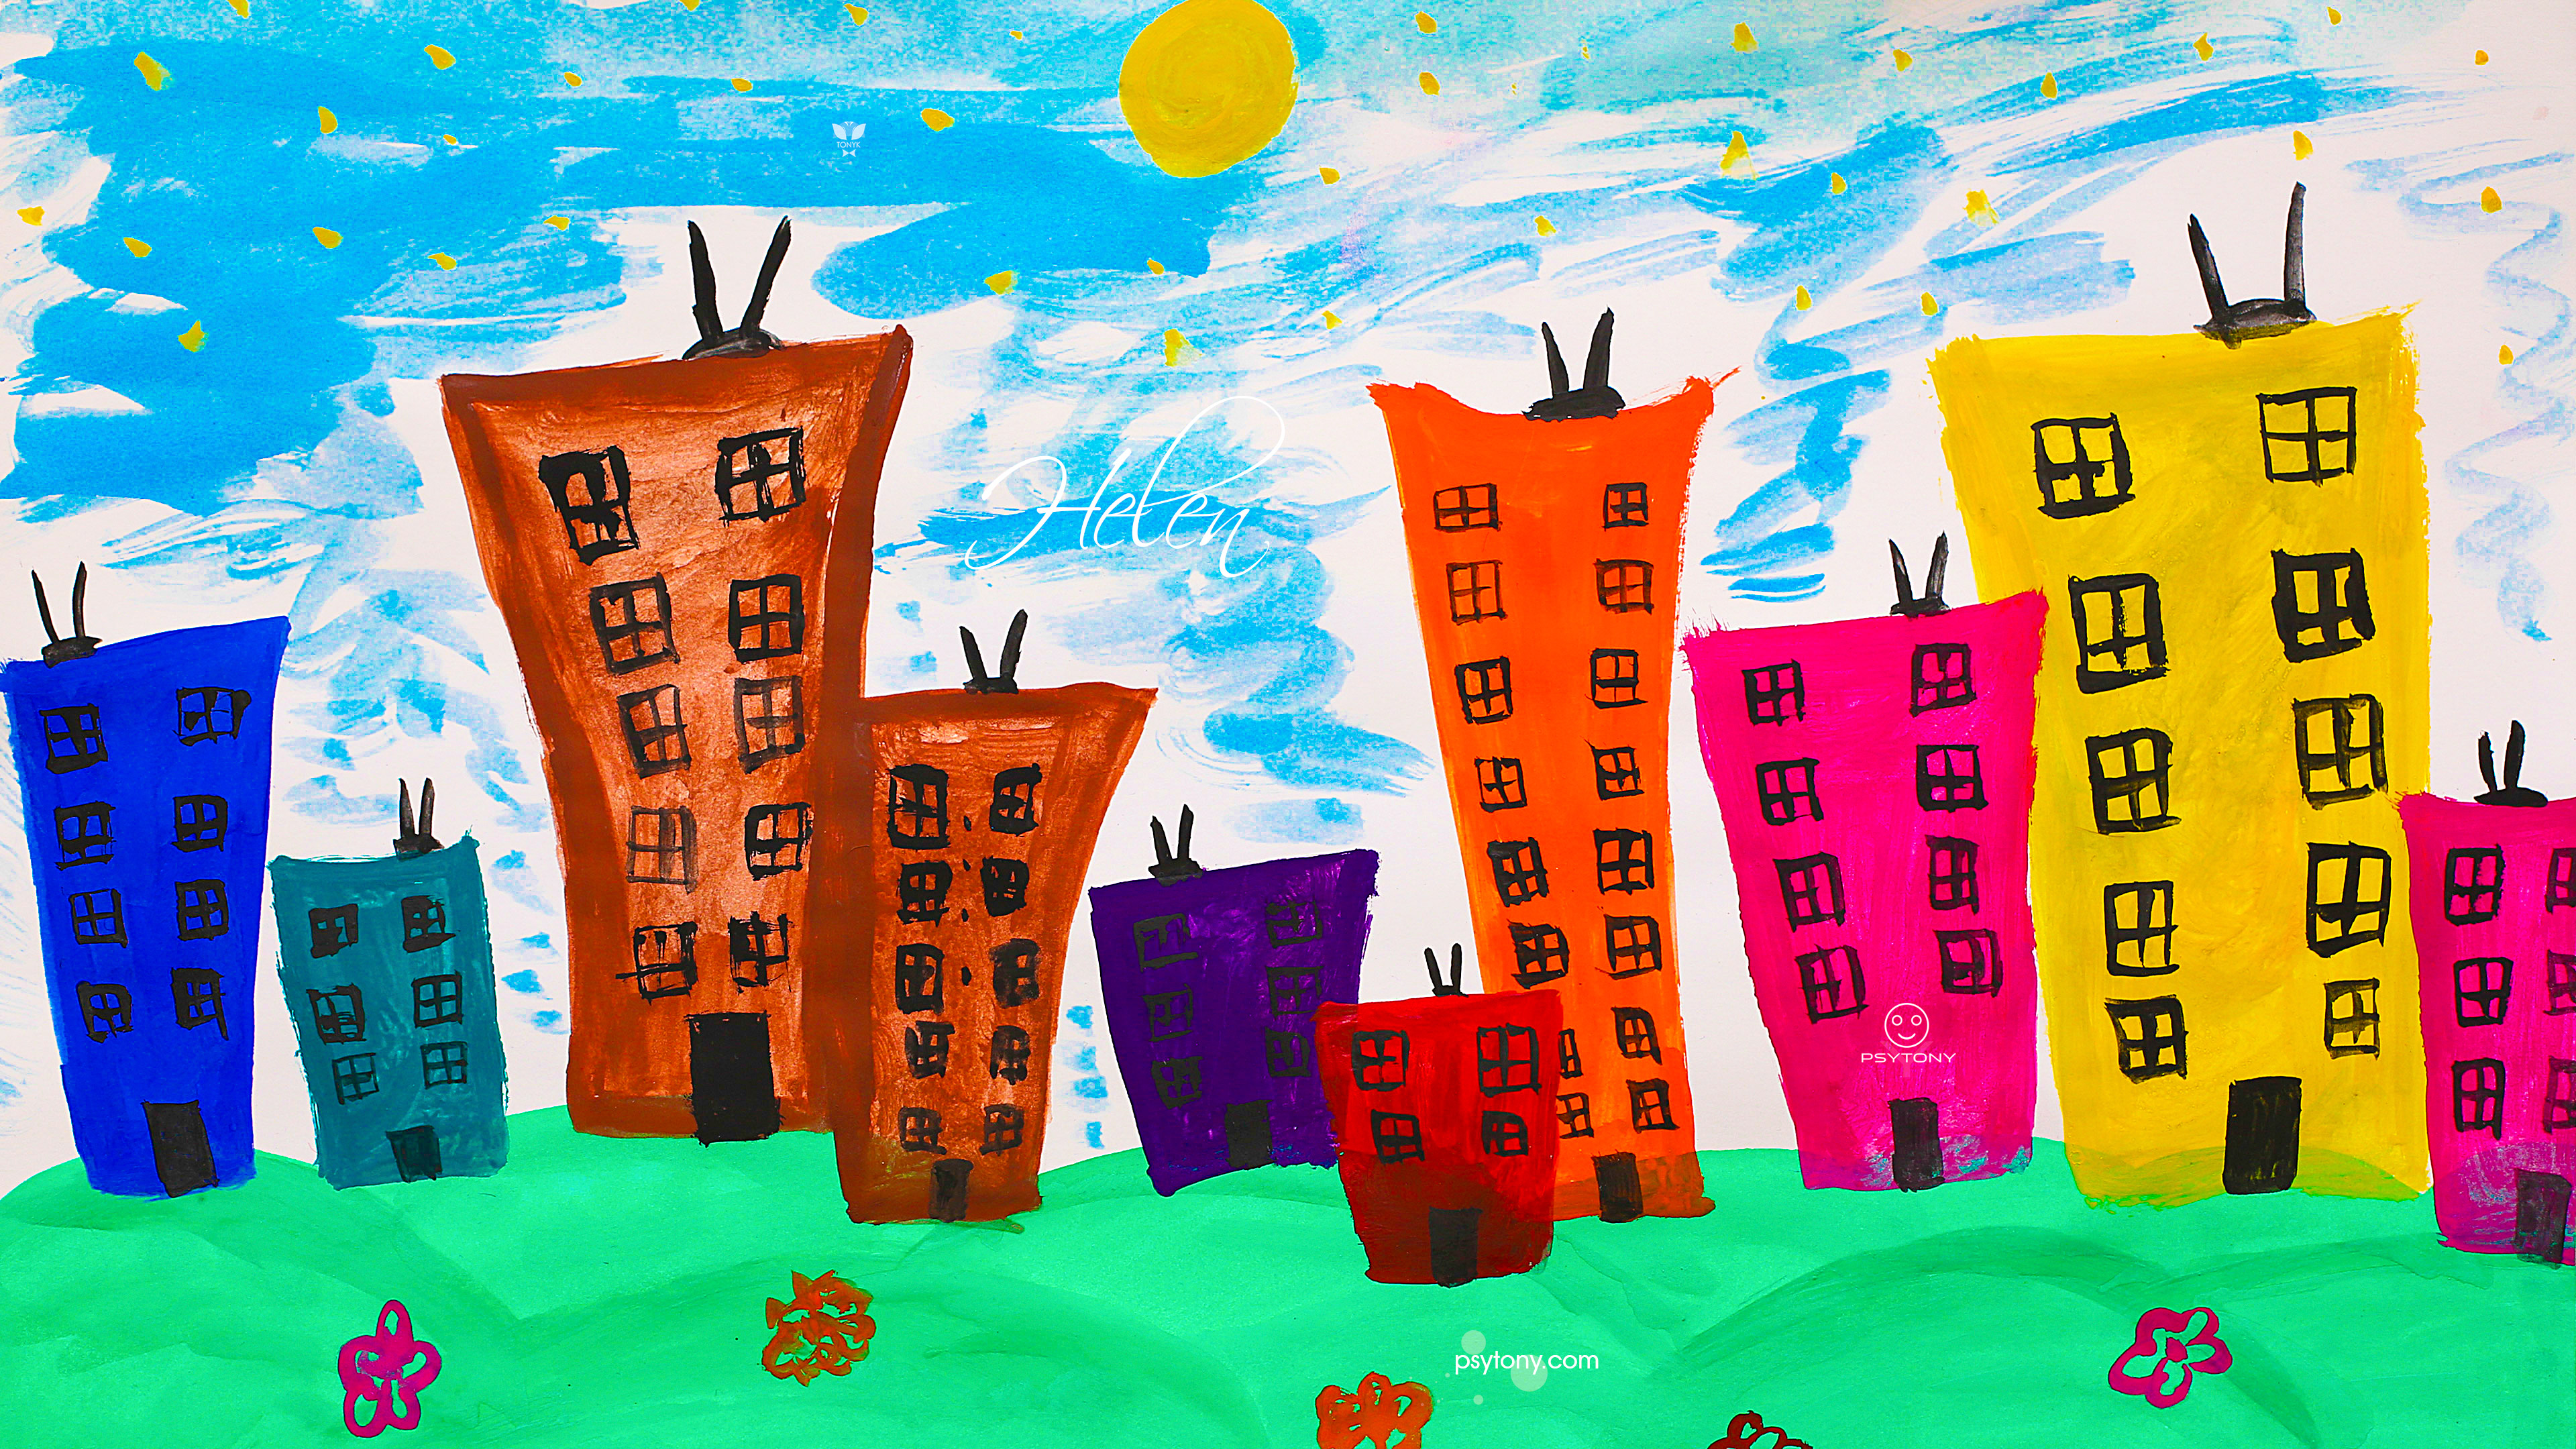 Helen-Soul-Girl-Building-Fears-People-Sky-Sun-Nature-World-Psy-TonyPsy-Picture-Drawing-Paints-Art-2019-Multicolors-4K-Wallpapers-by-Psychologist-Tony-Kokhan-www.psytony.com-image